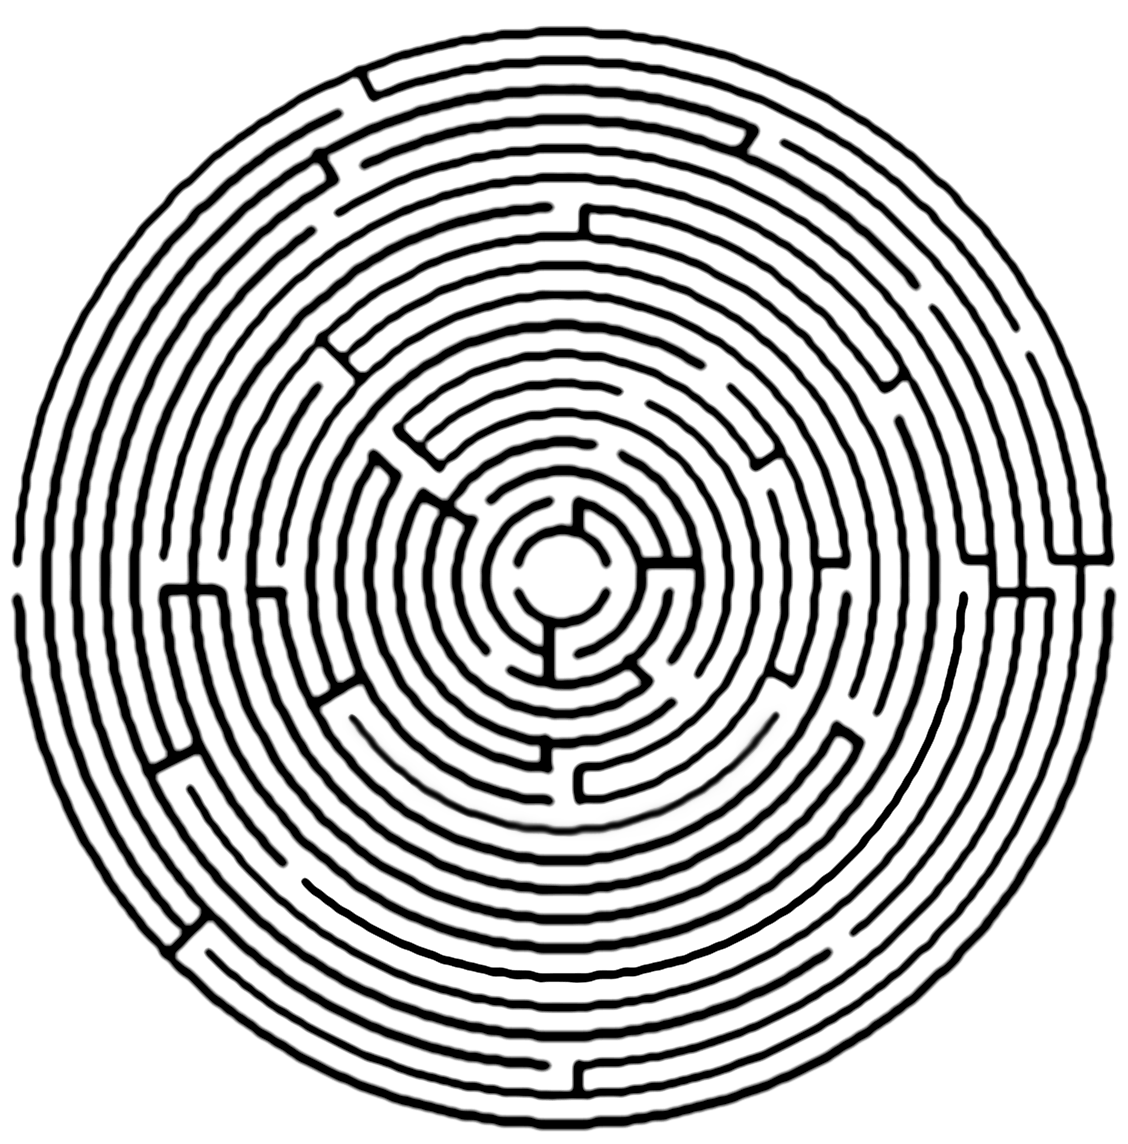 Circle Maze - DopePicz | Calendars, Labyrinths, clocks ...